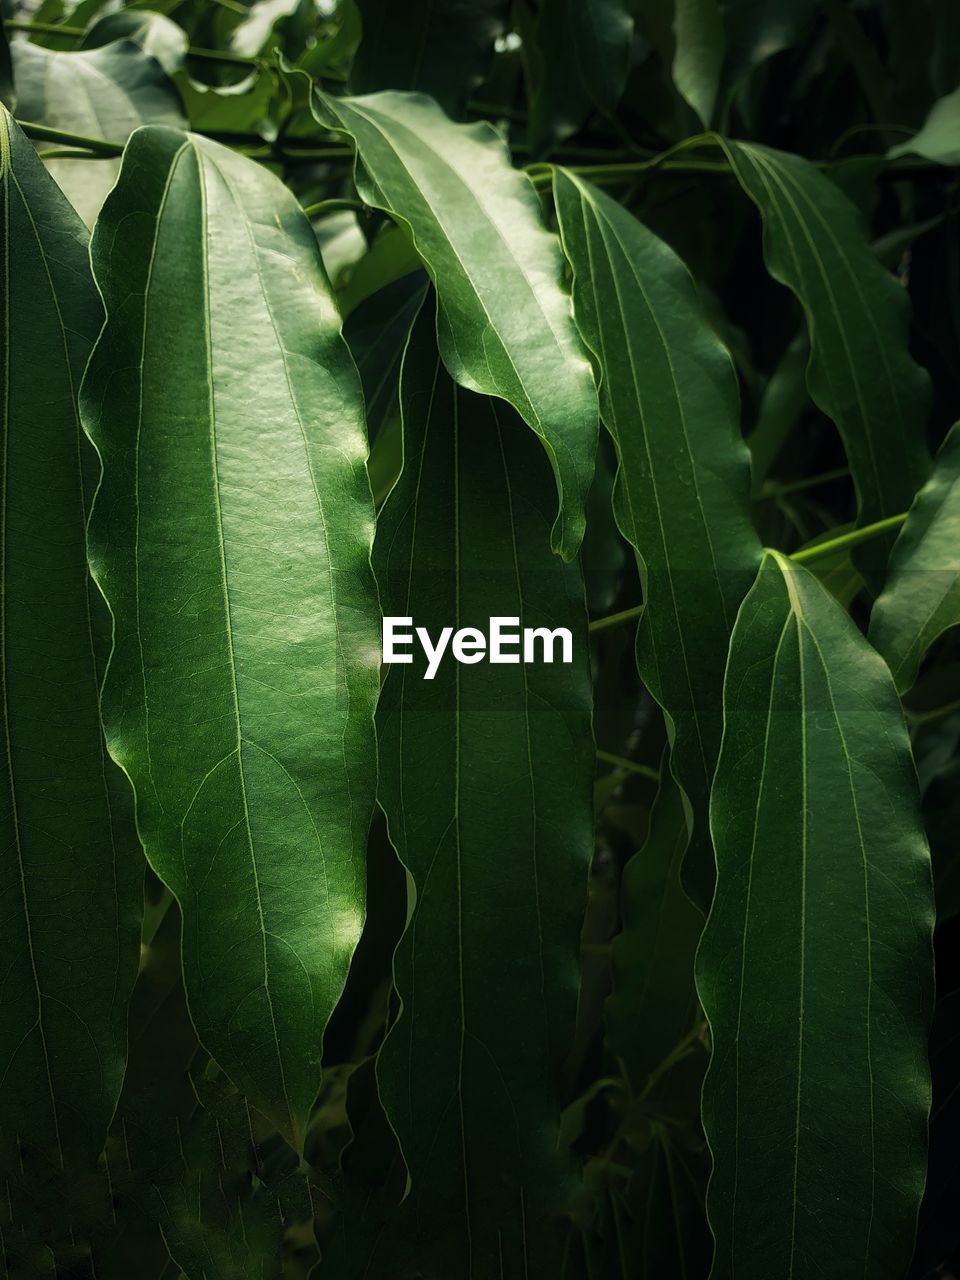 leaf, plant part, green color, growth, plant, beauty in nature, close-up, nature, no people, freshness, day, focus on foreground, outdoors, leaf vein, fragility, vulnerability, full frame, tranquility, botany, vegetable, leaves